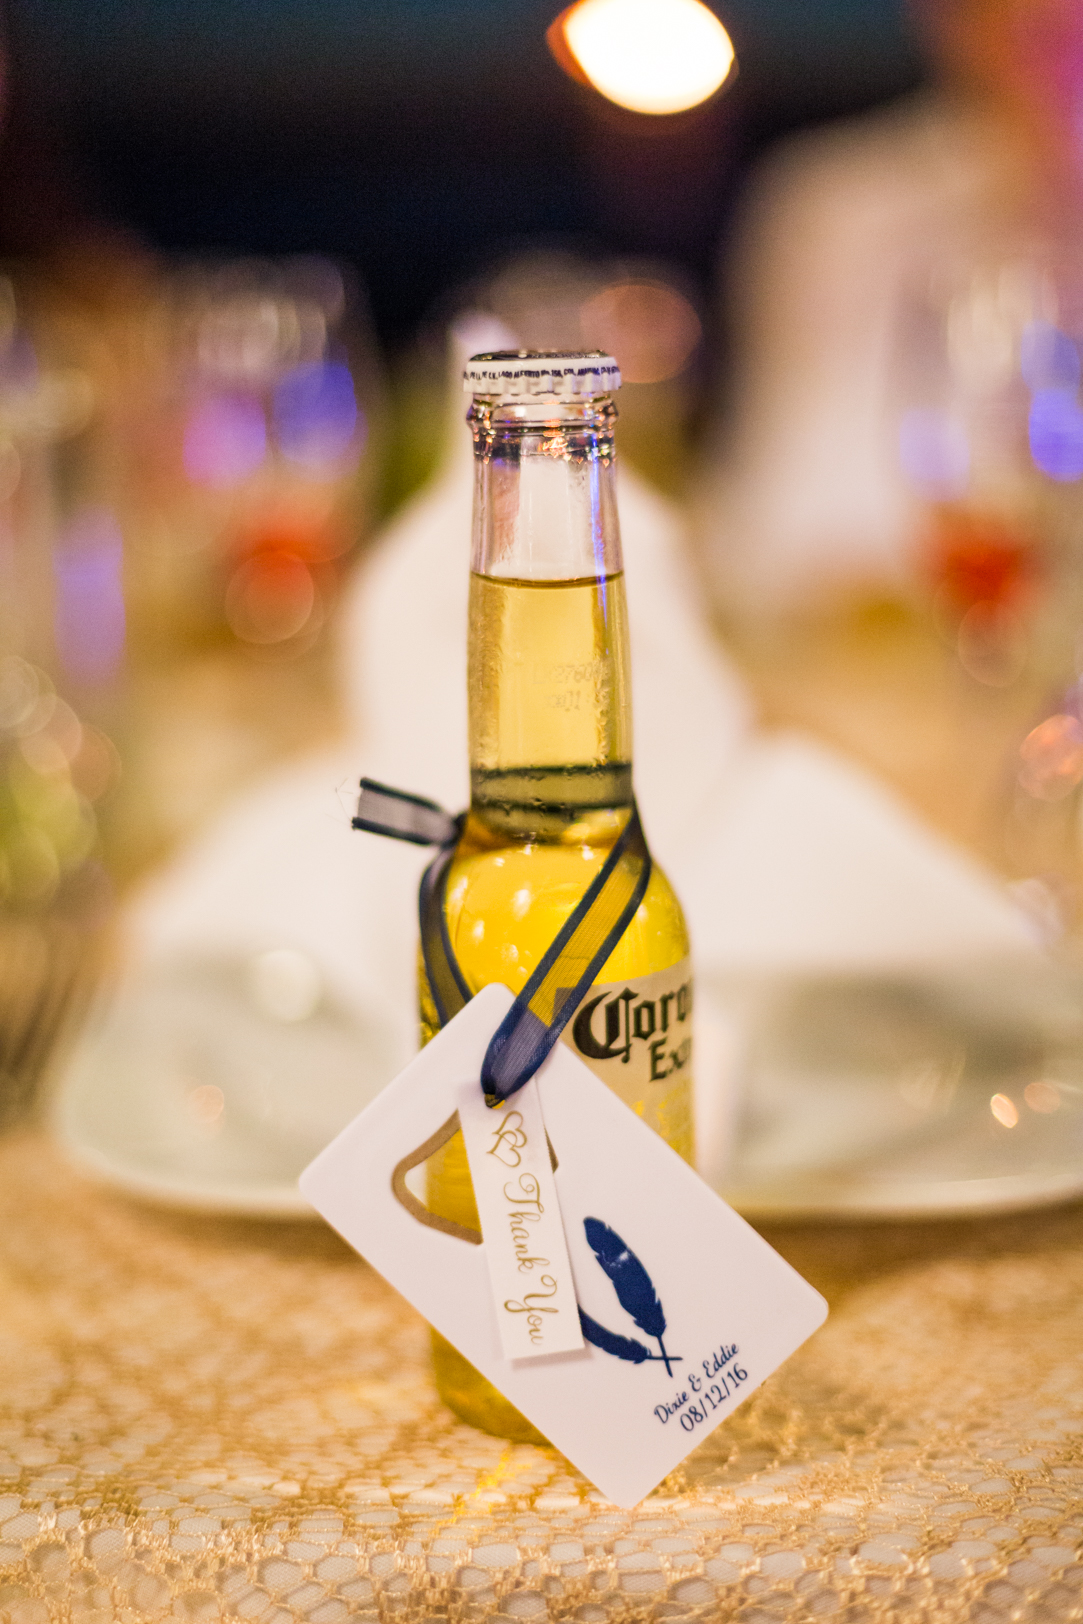 Table gift from the wedding bottle opener